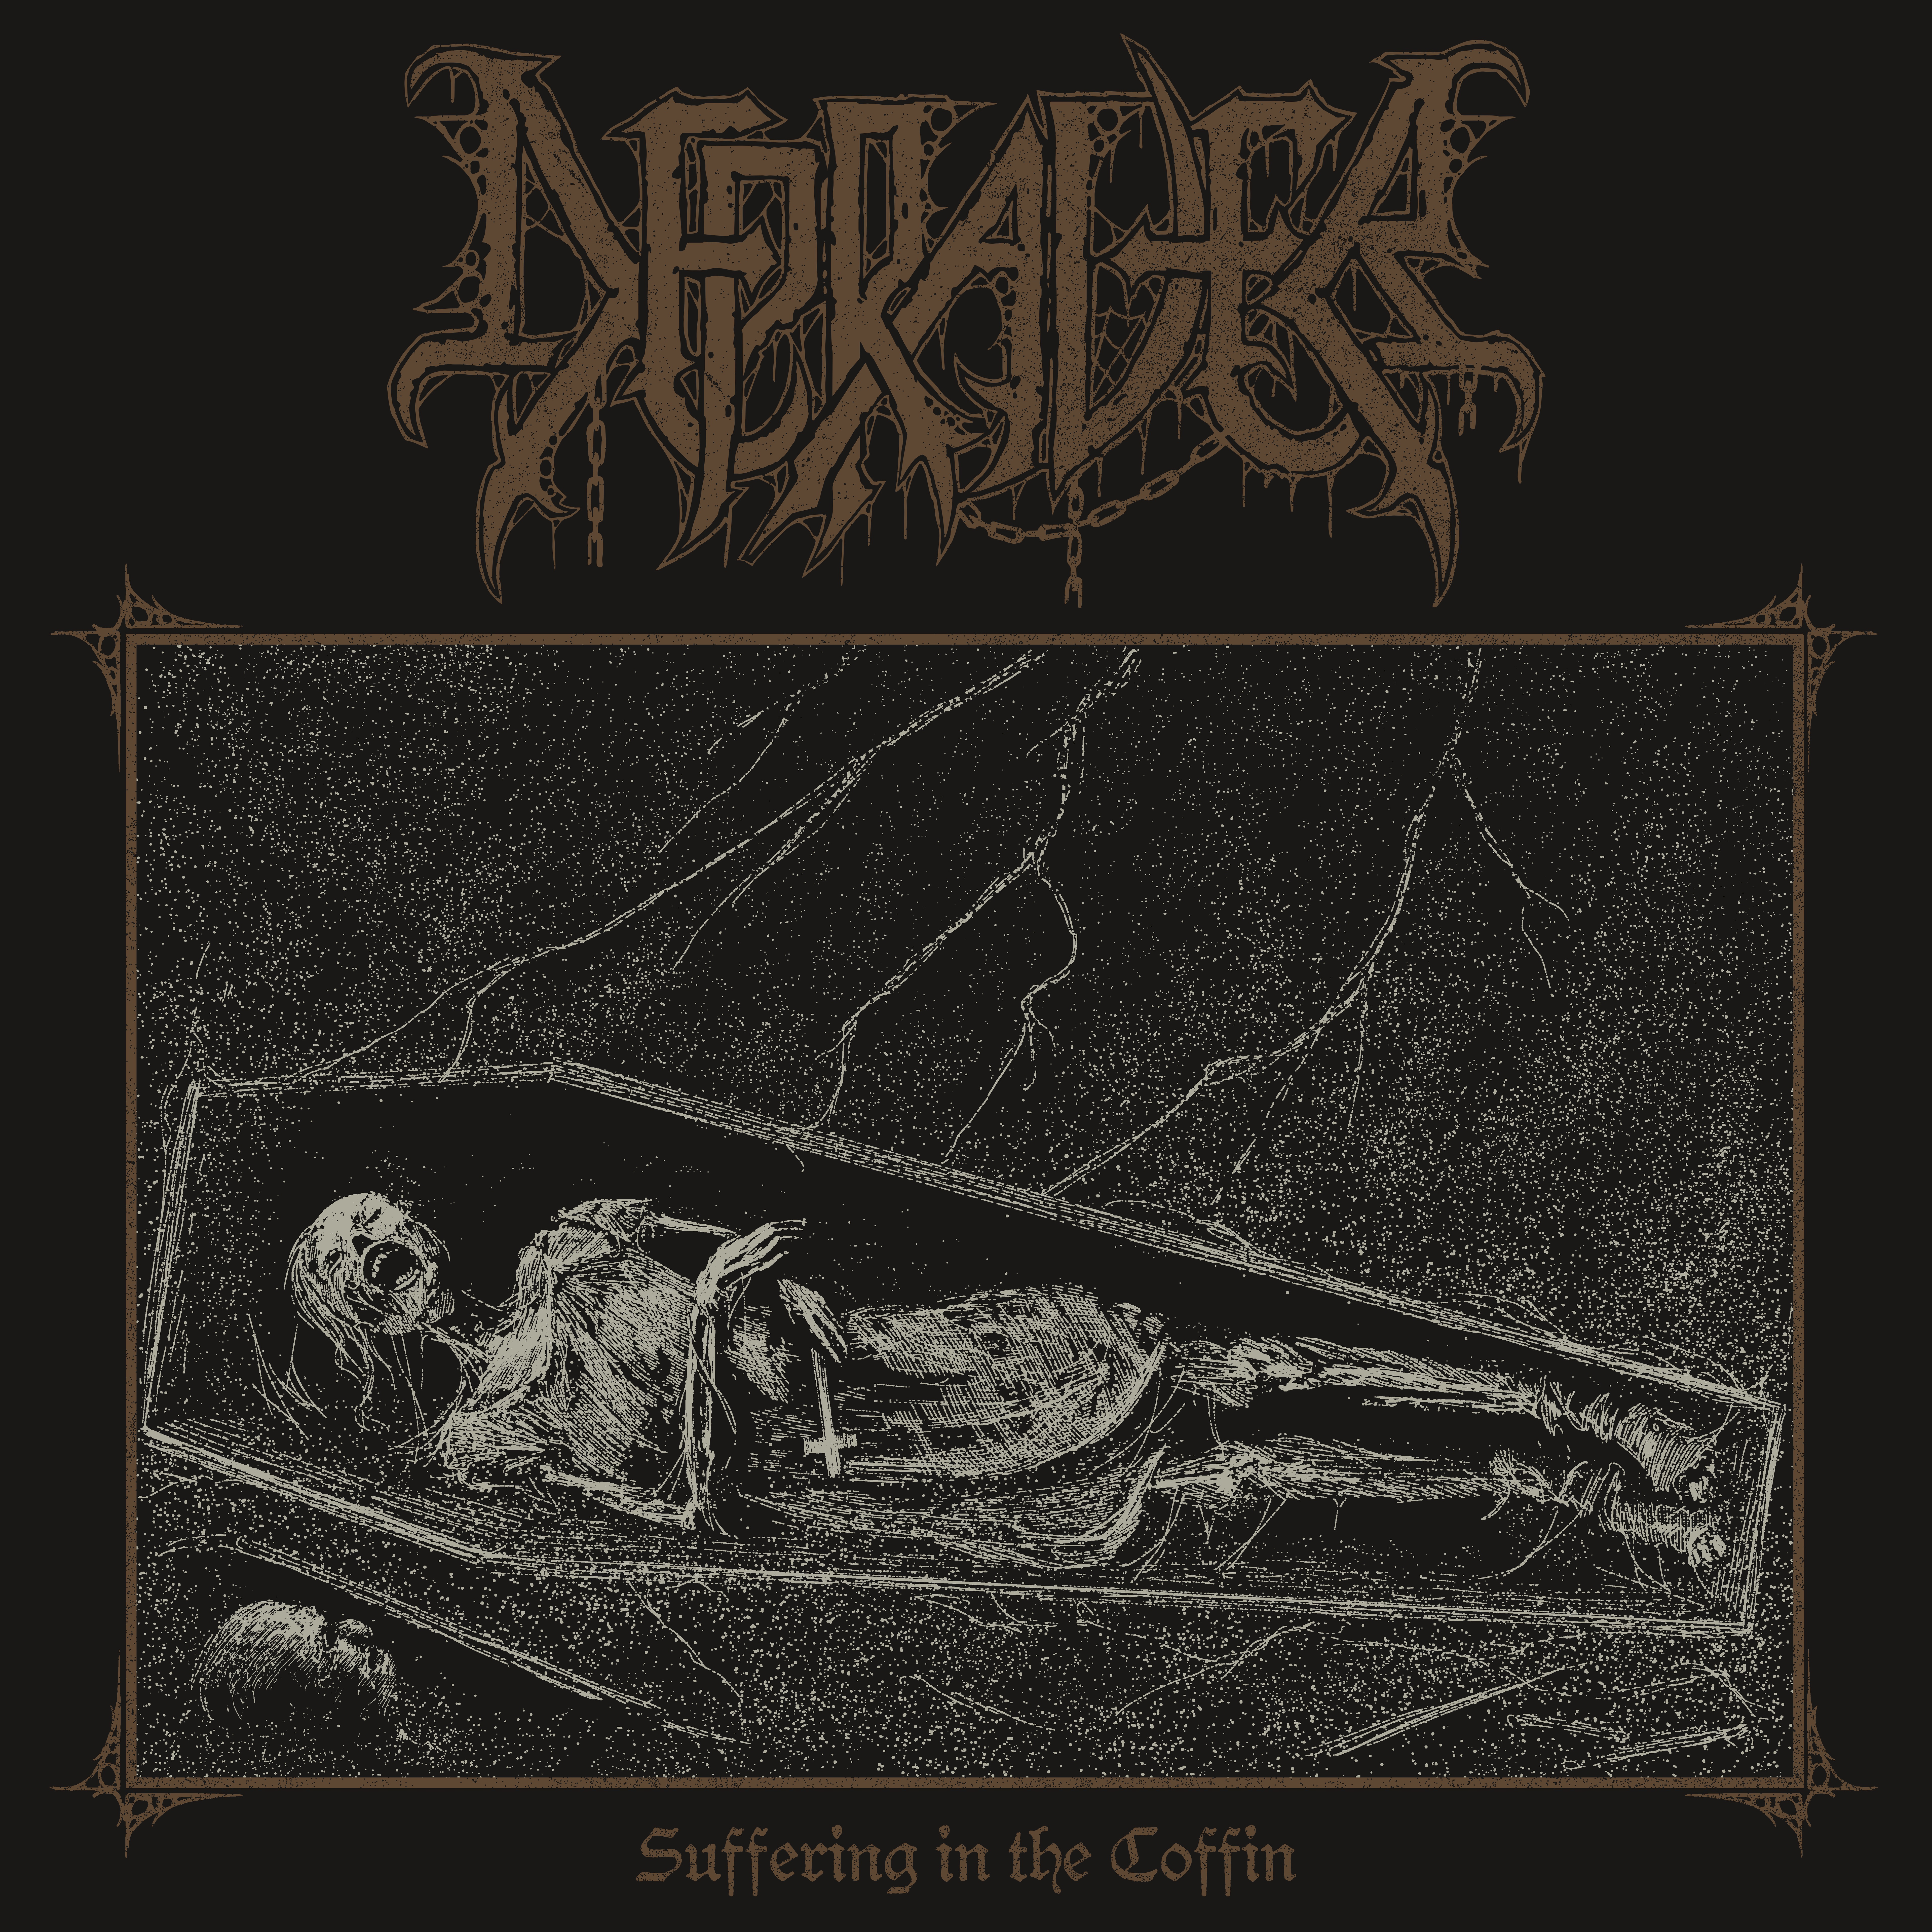 DEPRAVER - Suffering in the Coffin [Special Edition]